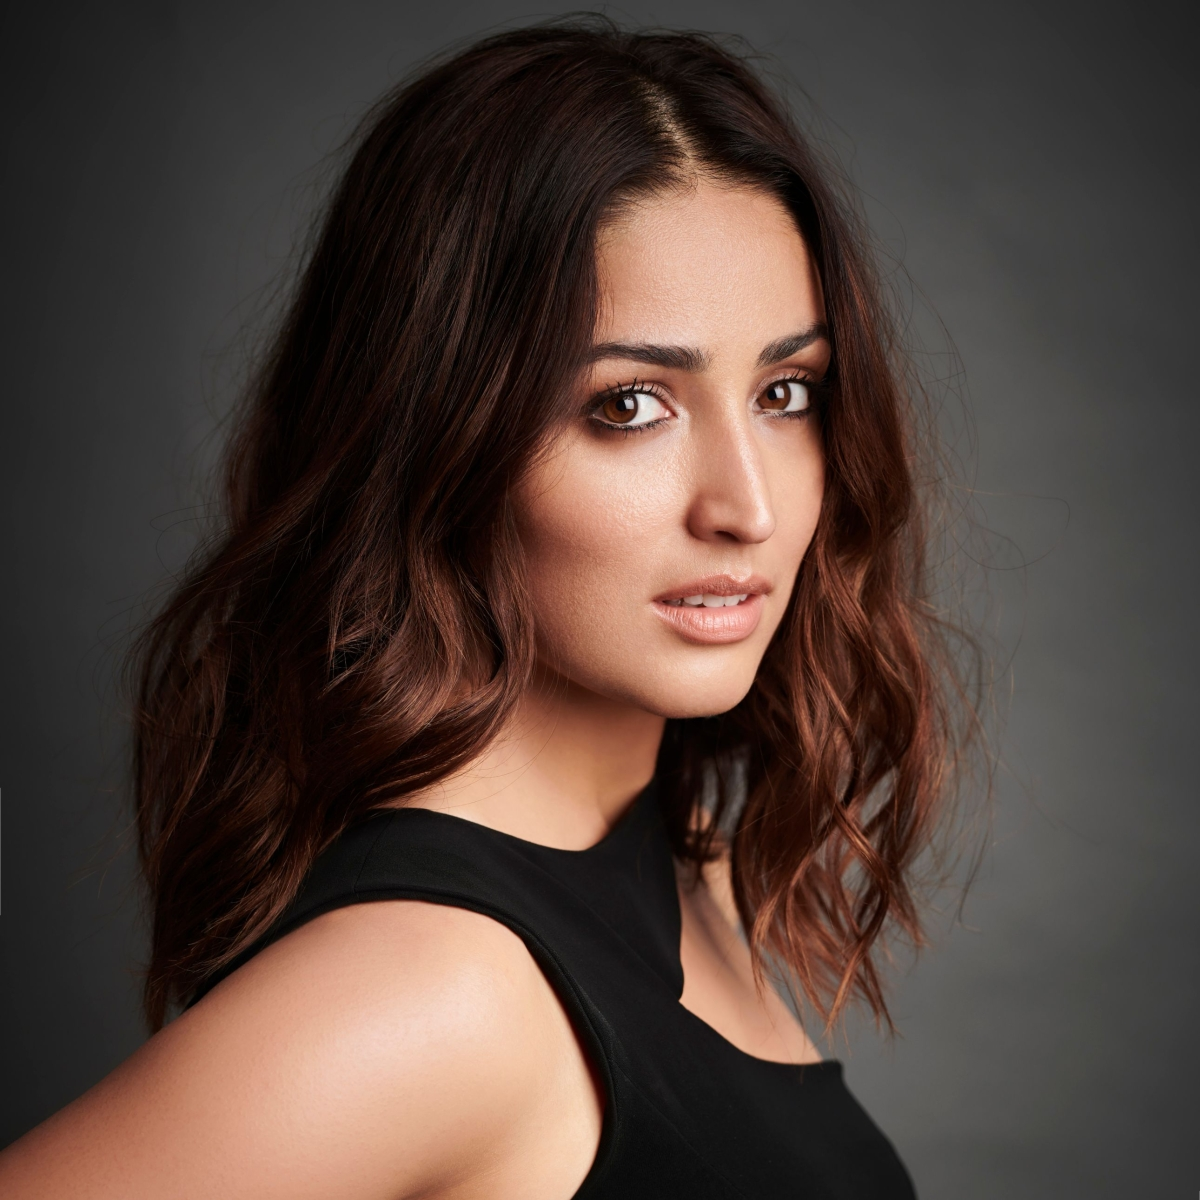 Yami Gautam is juggling two films at a time